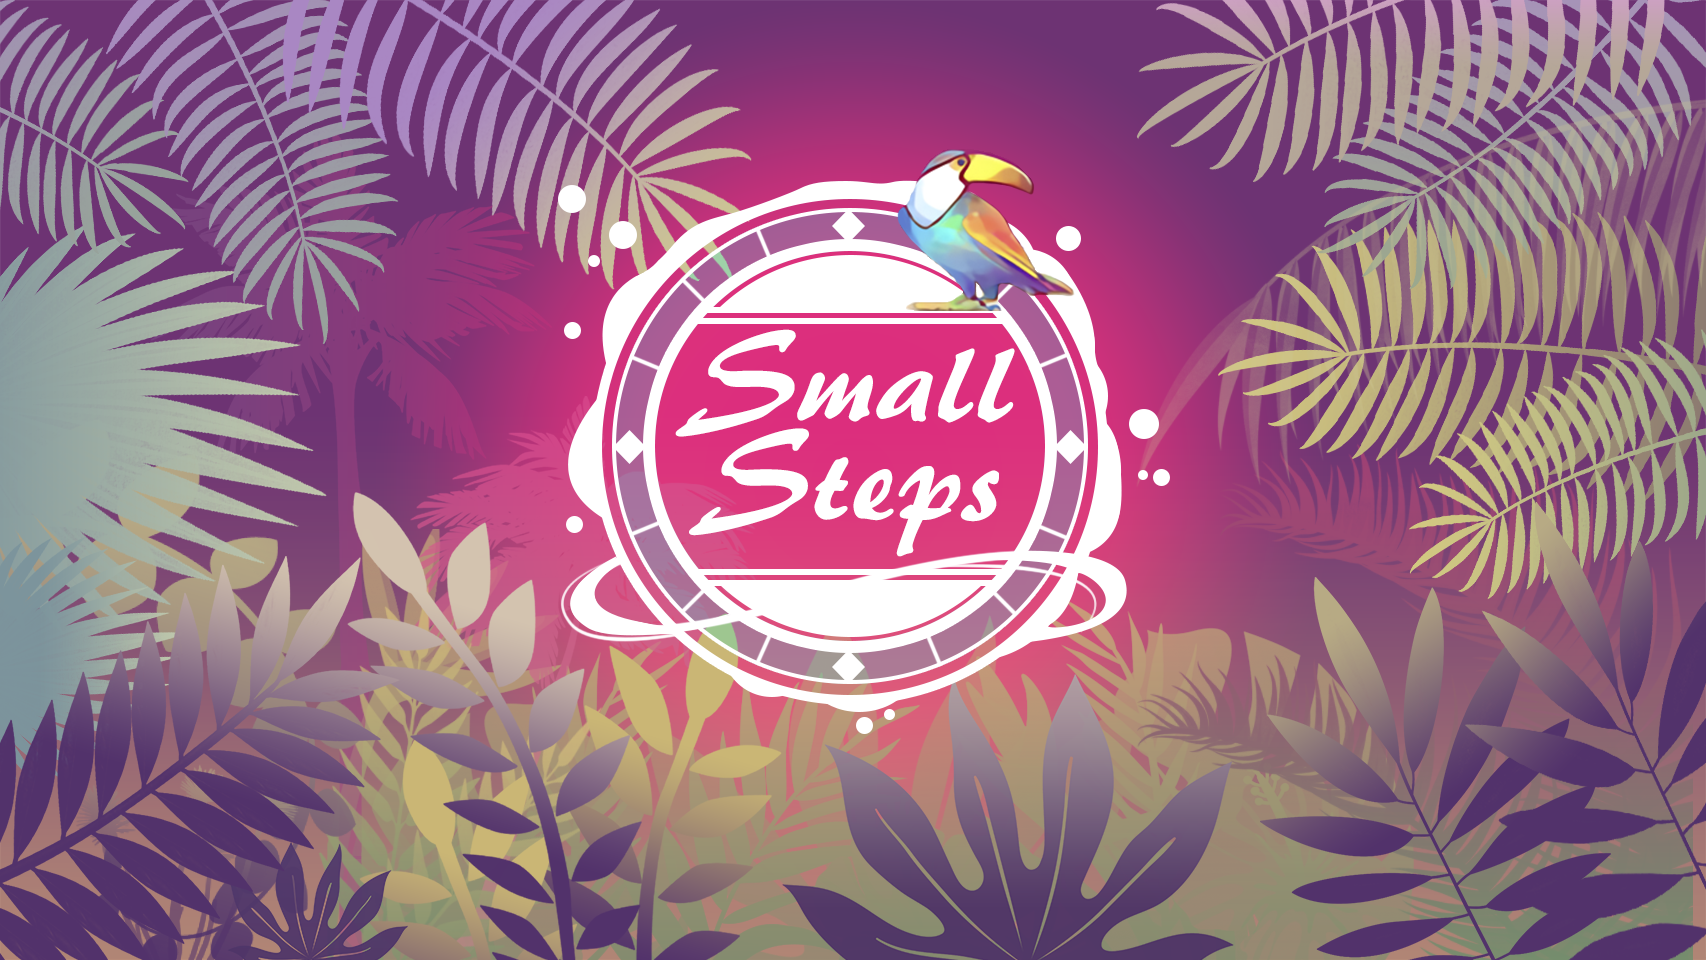 Small Steps-bg.png